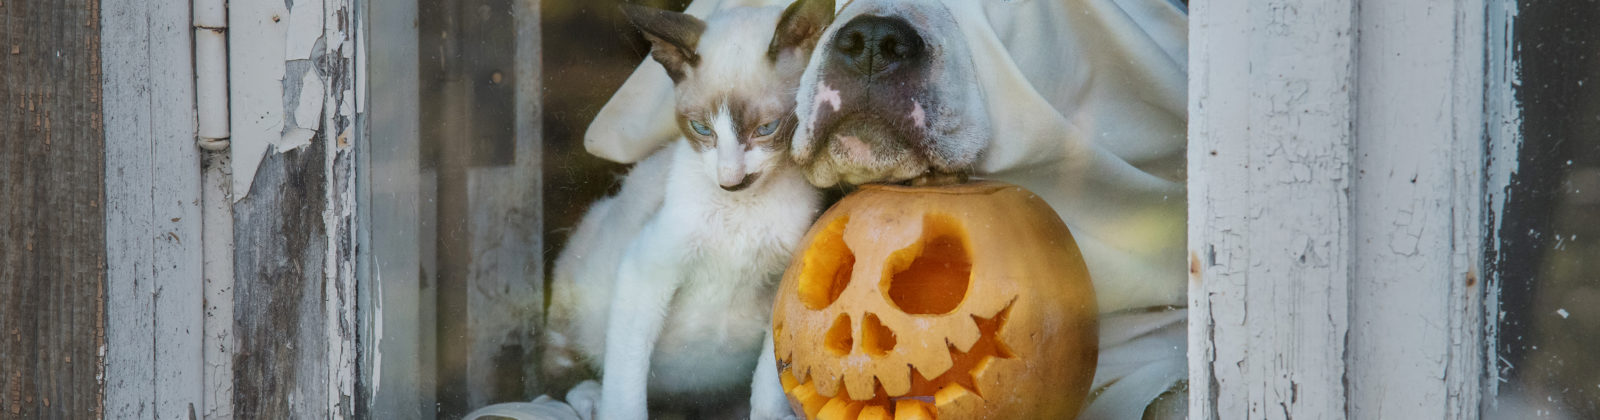 Halloween costumes dogs cats 2021